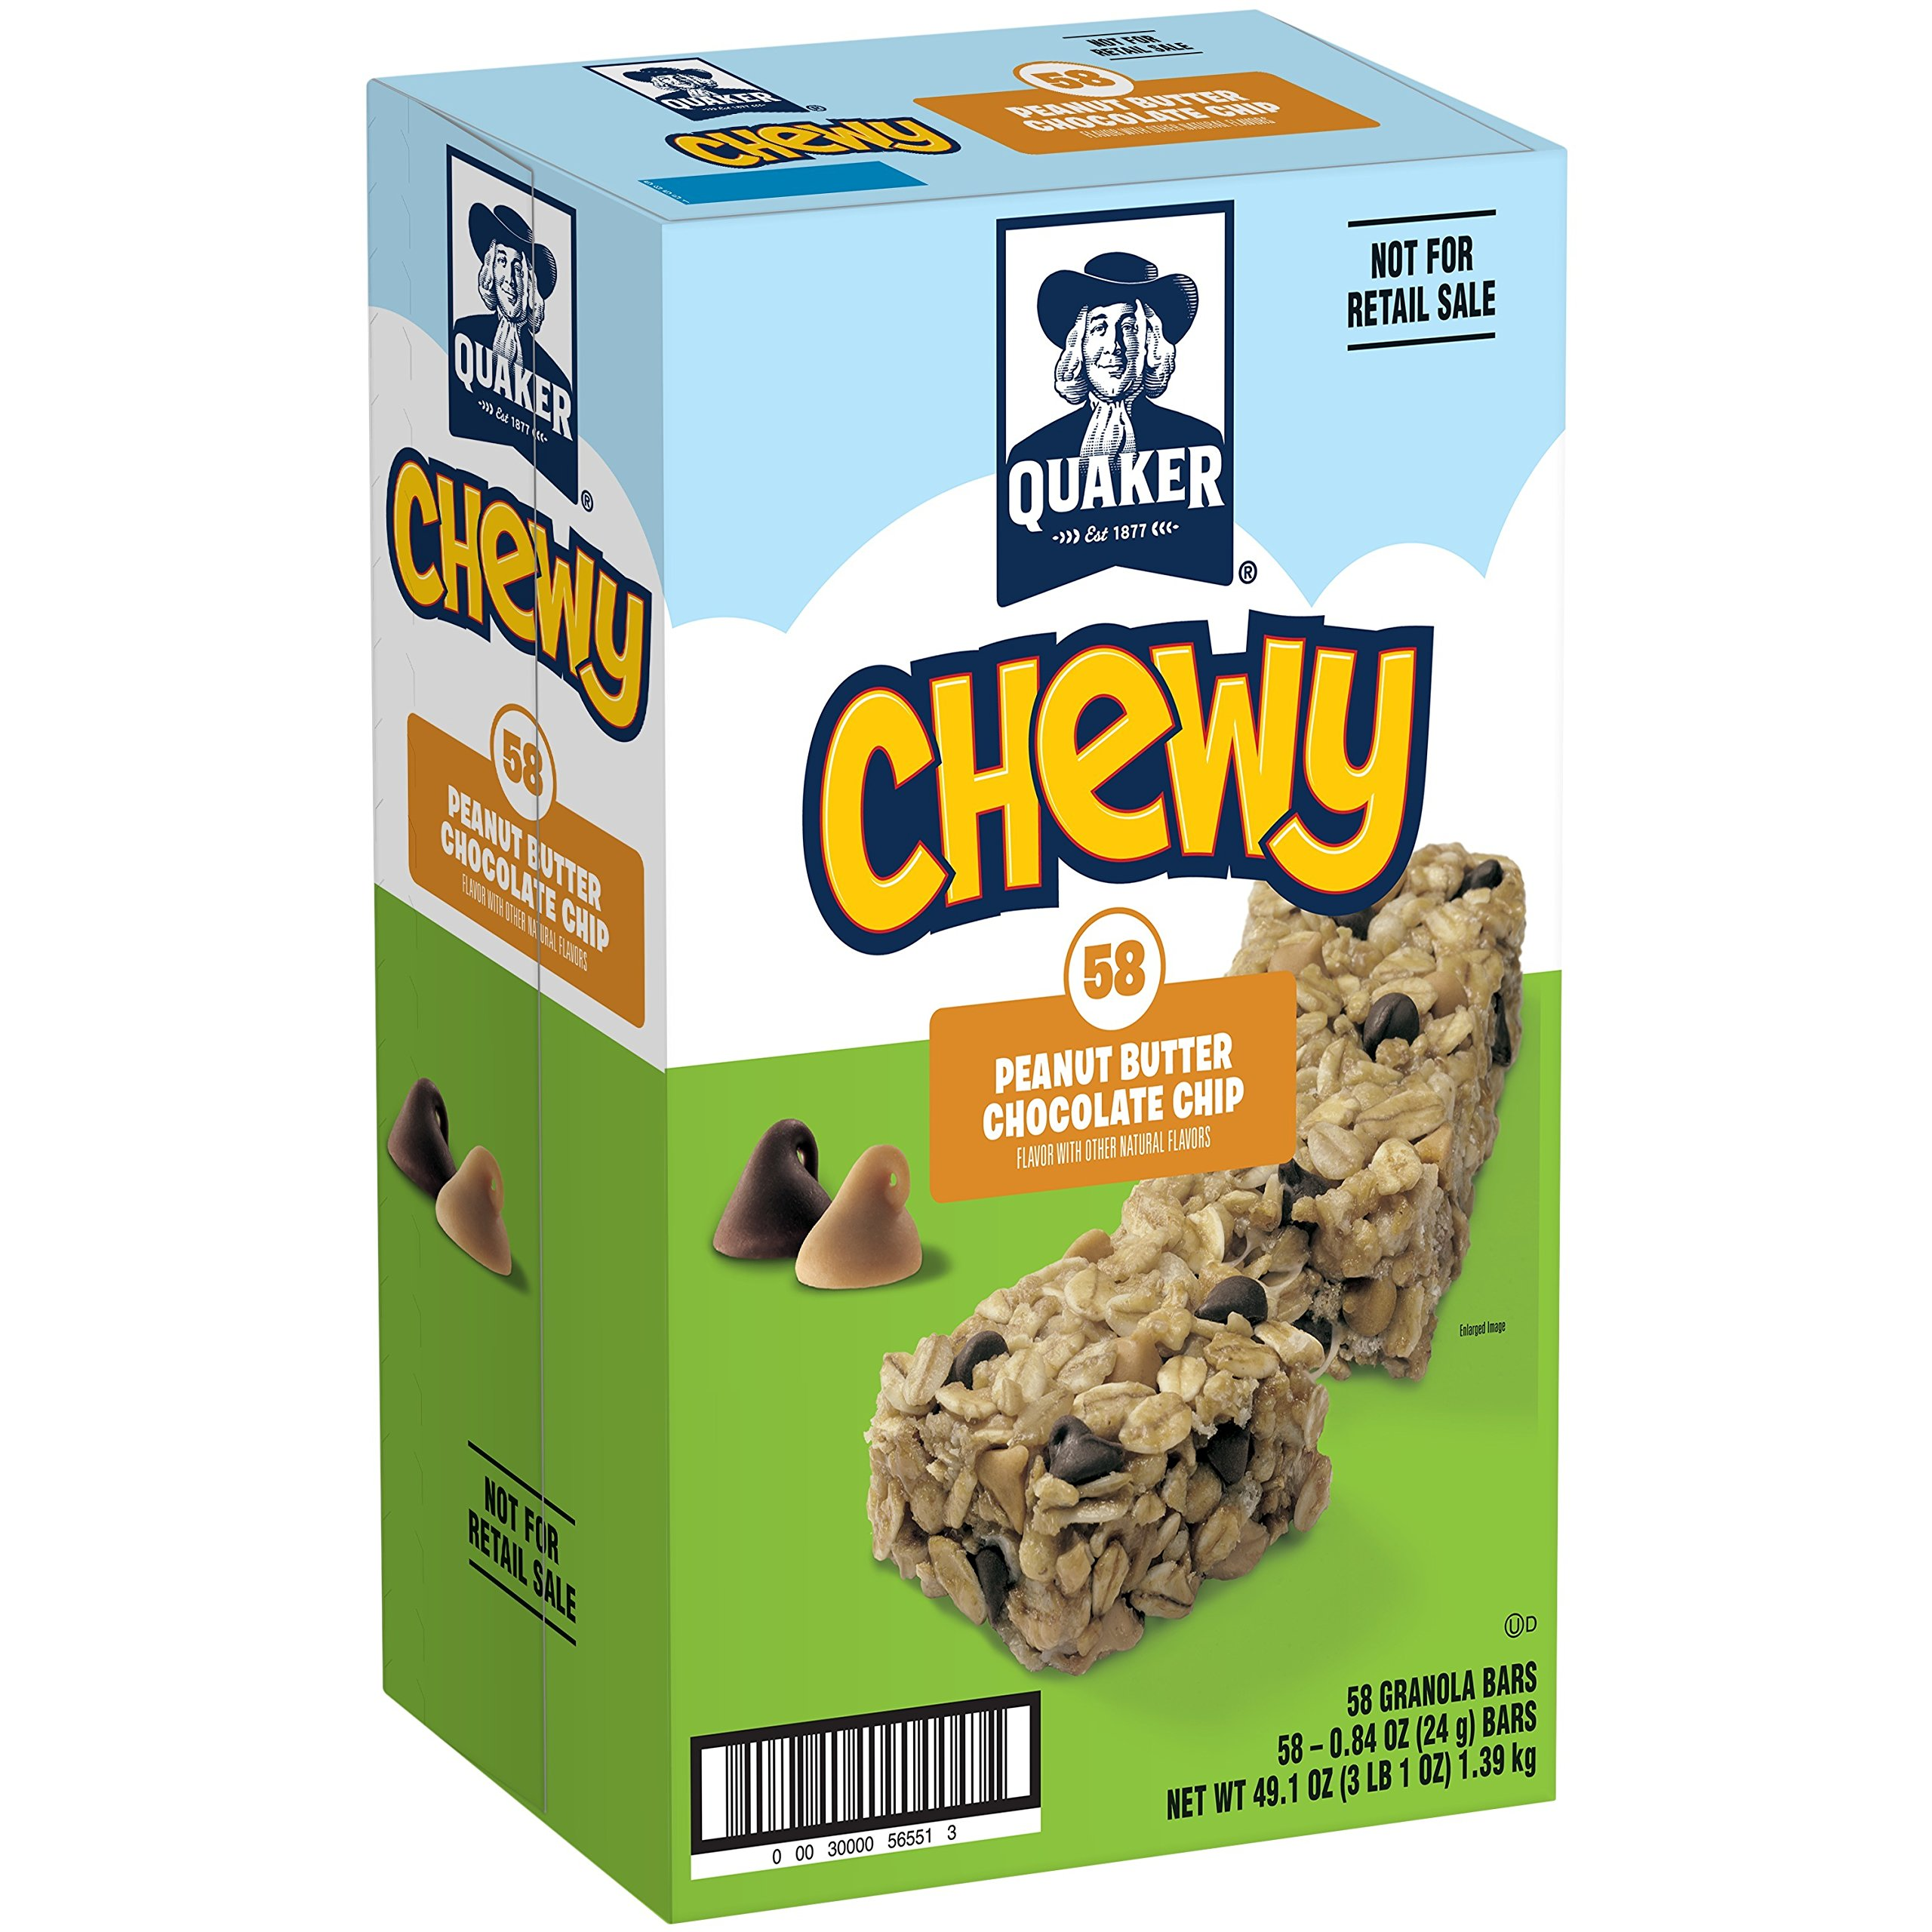 Quaker Chewy Granola Bars, Peanut Butter Chocolate Chip,58 Count,49.1 oz